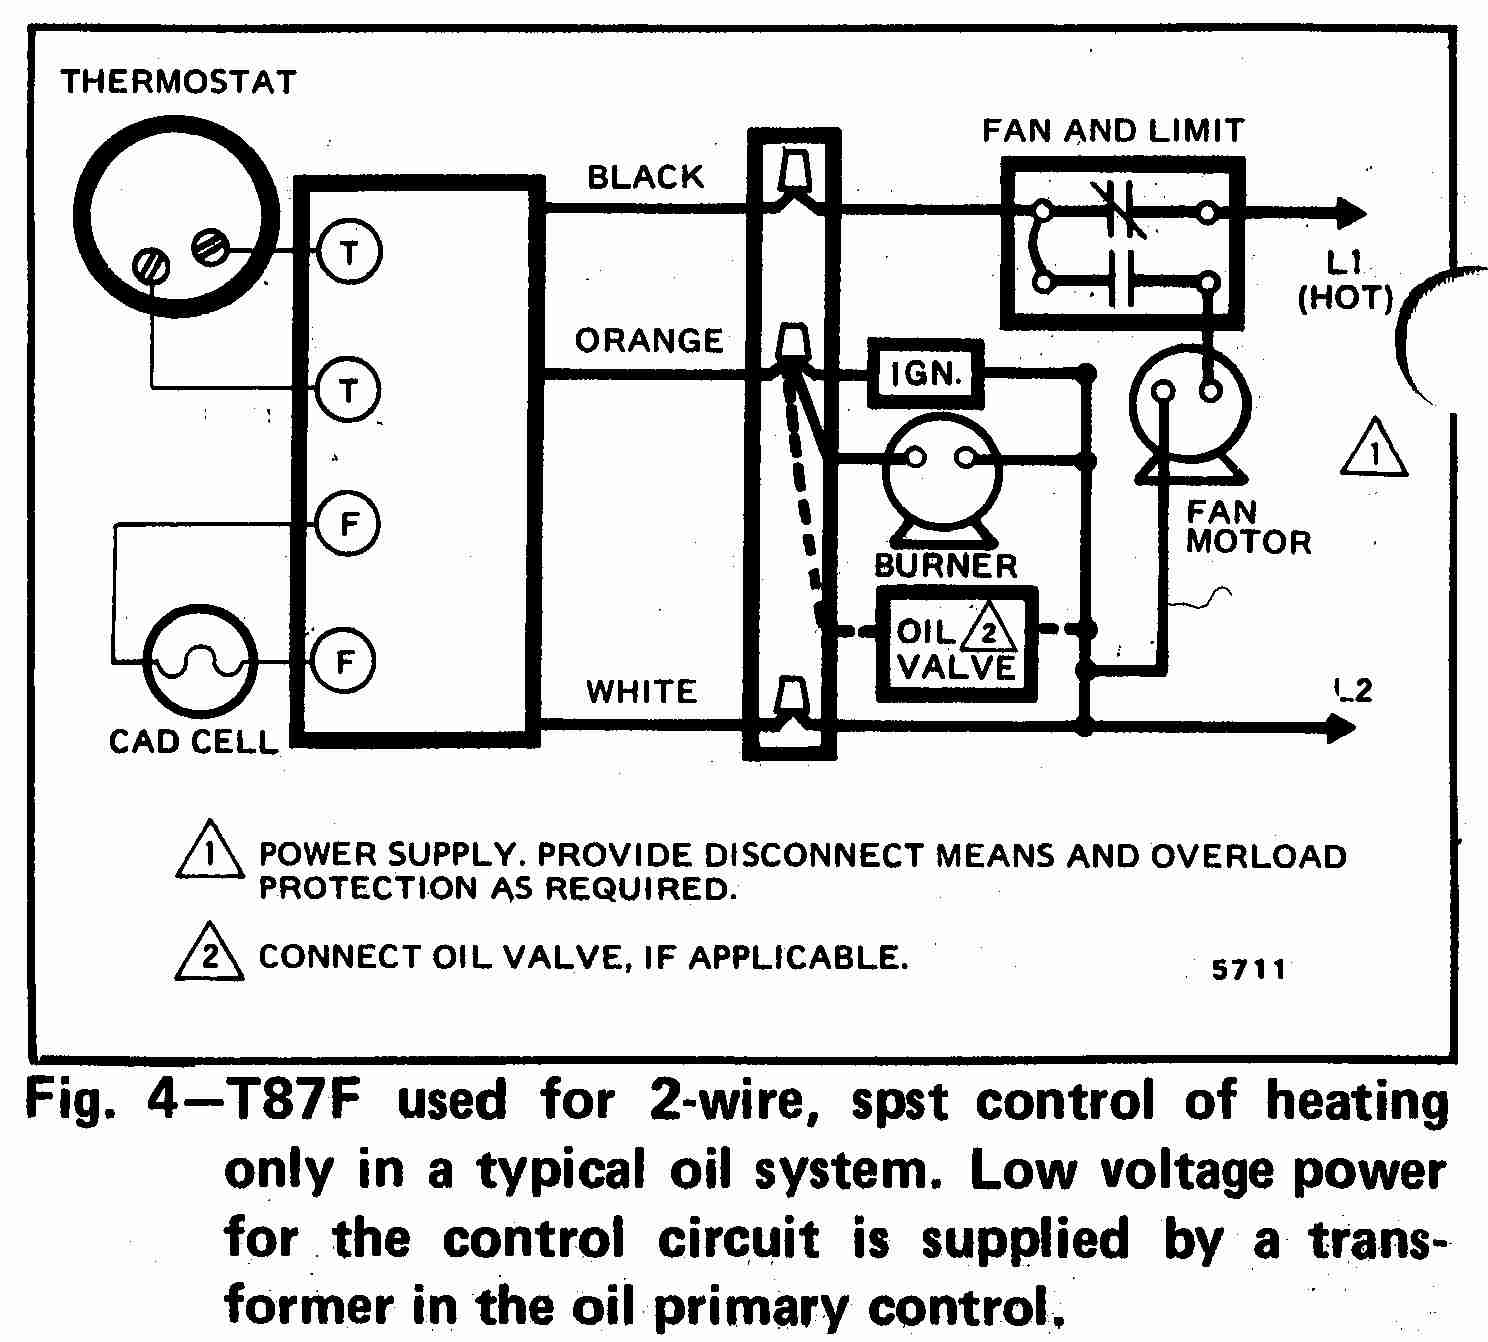 4 Wire Fan Switch Color Code | In Wiring Diagram Schematic Diagram